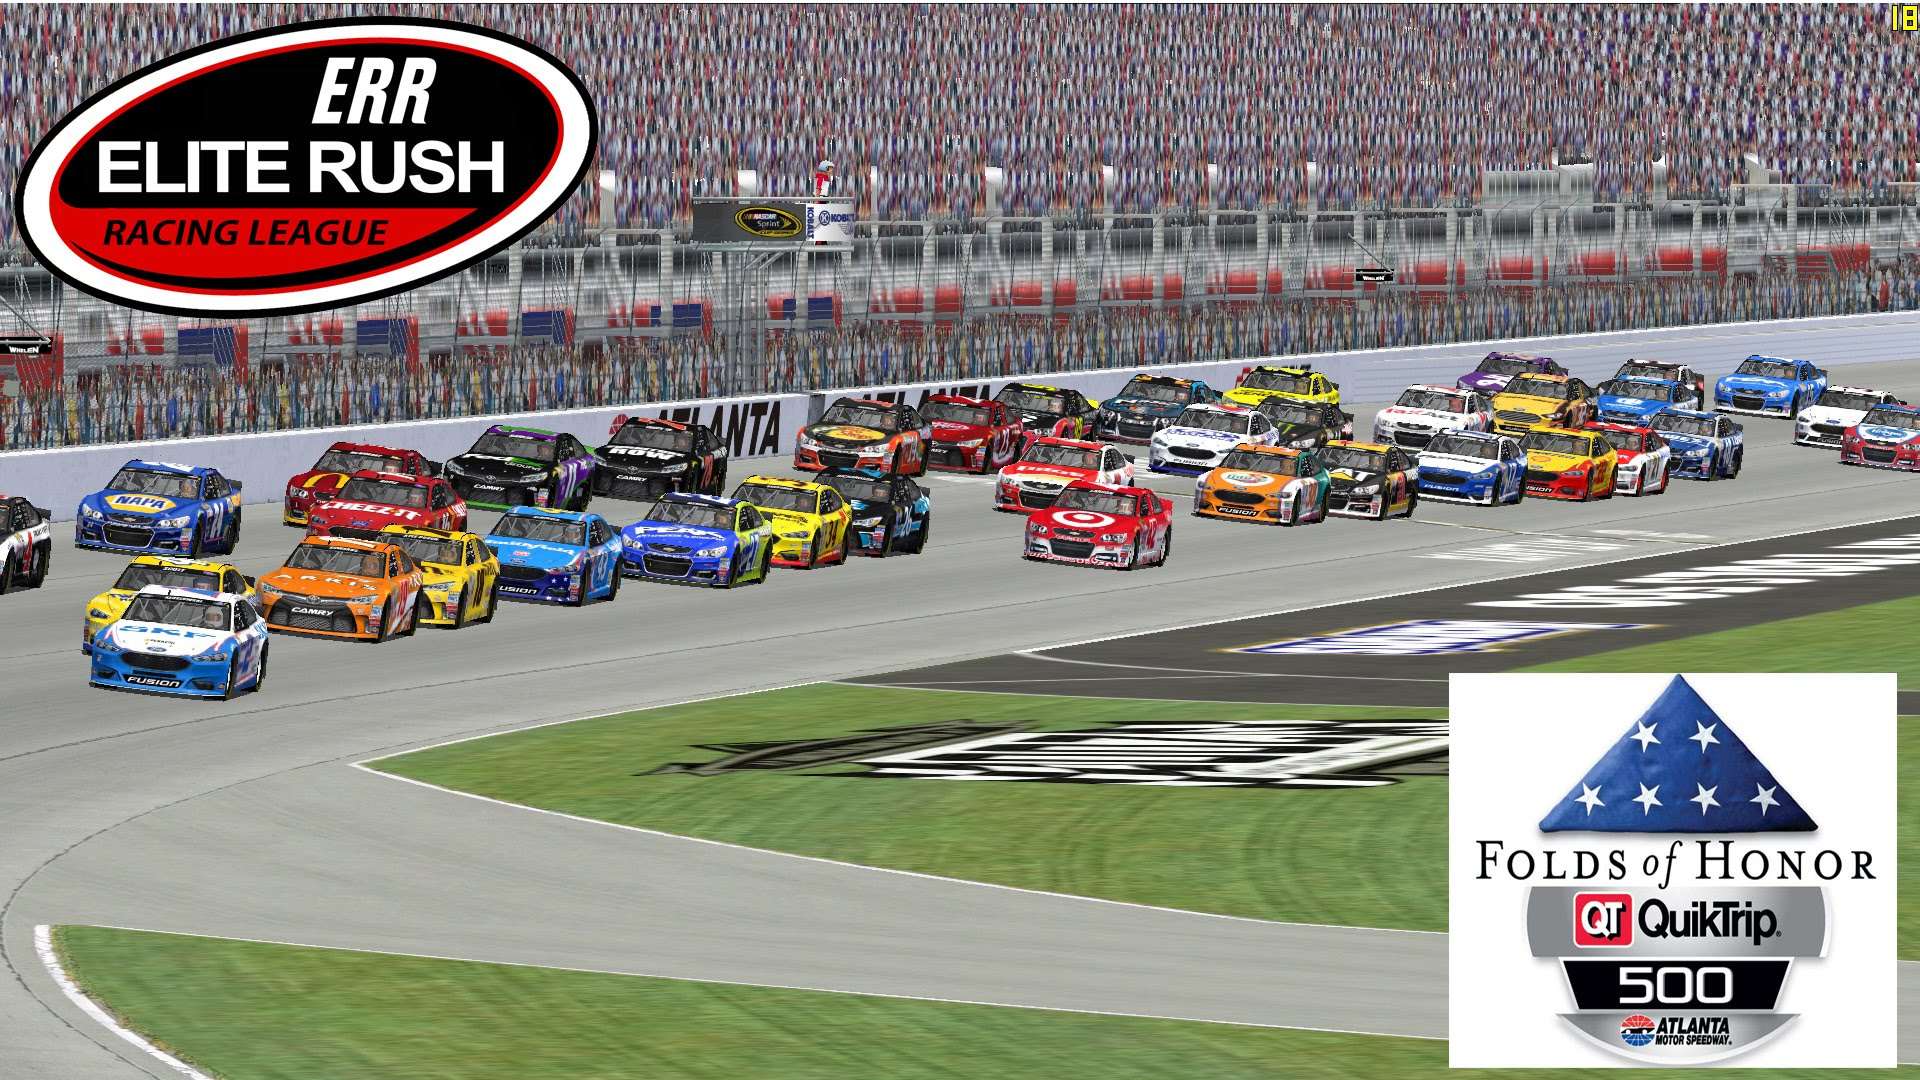 Nascar Racing 2003 - ERR Sprint Cup Series League Race - Atlanta ...